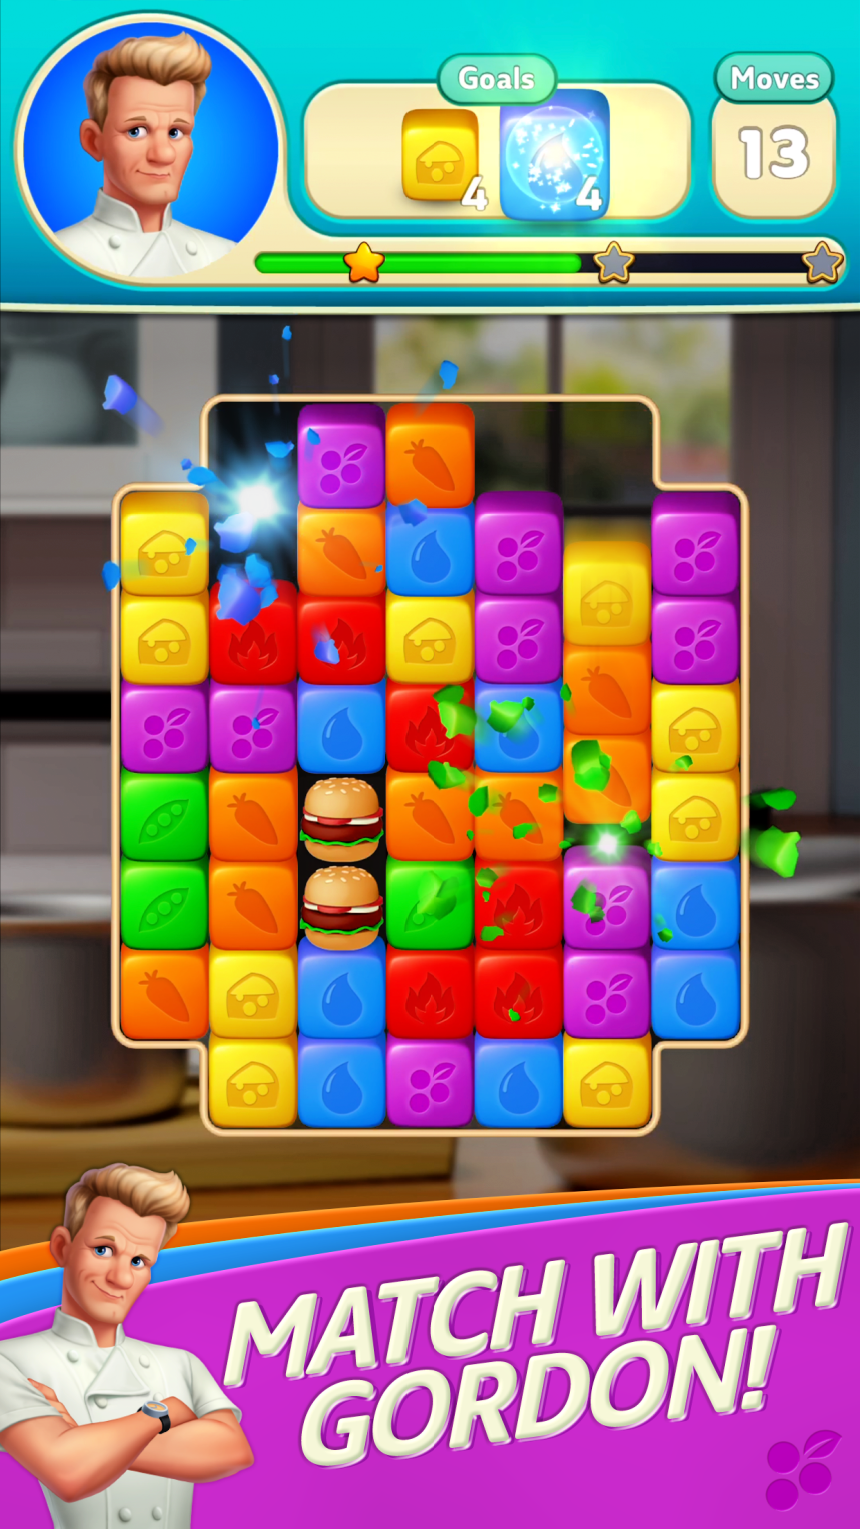 match-two puzzle game Gordon Ramsay's